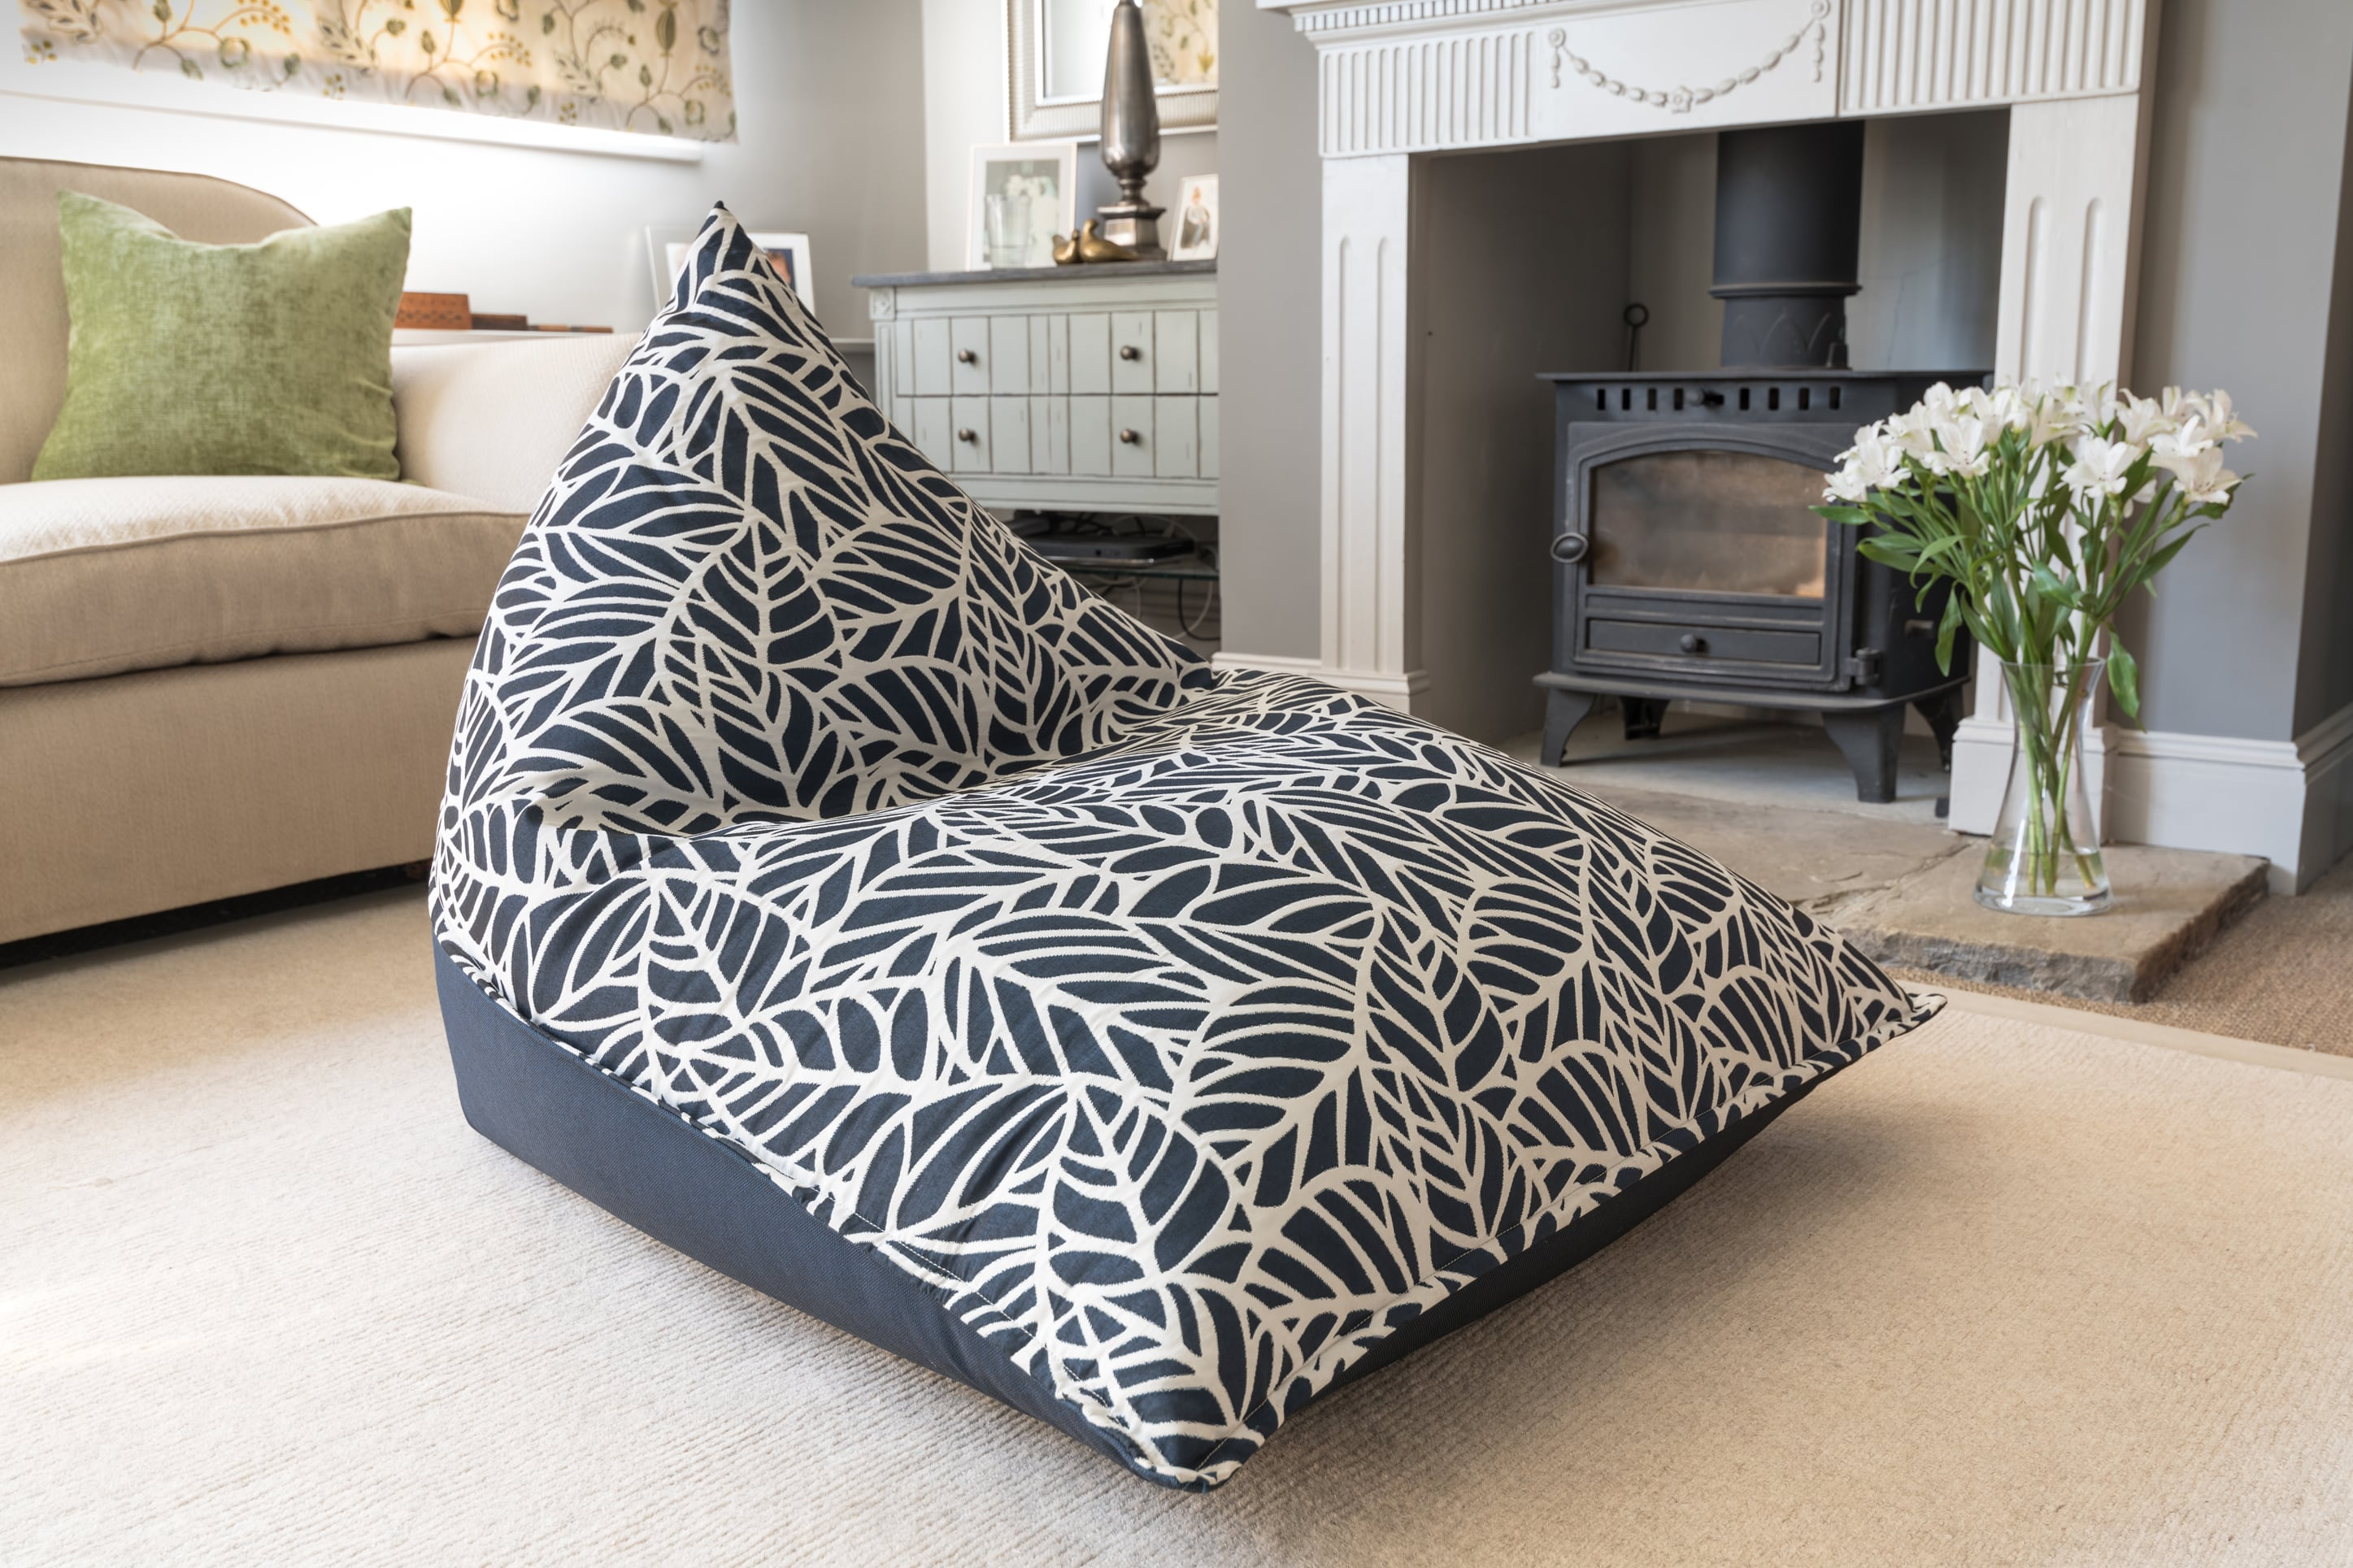 Armadillo Sun bean bag lounger in dark navy blue and white palm pattern indoors